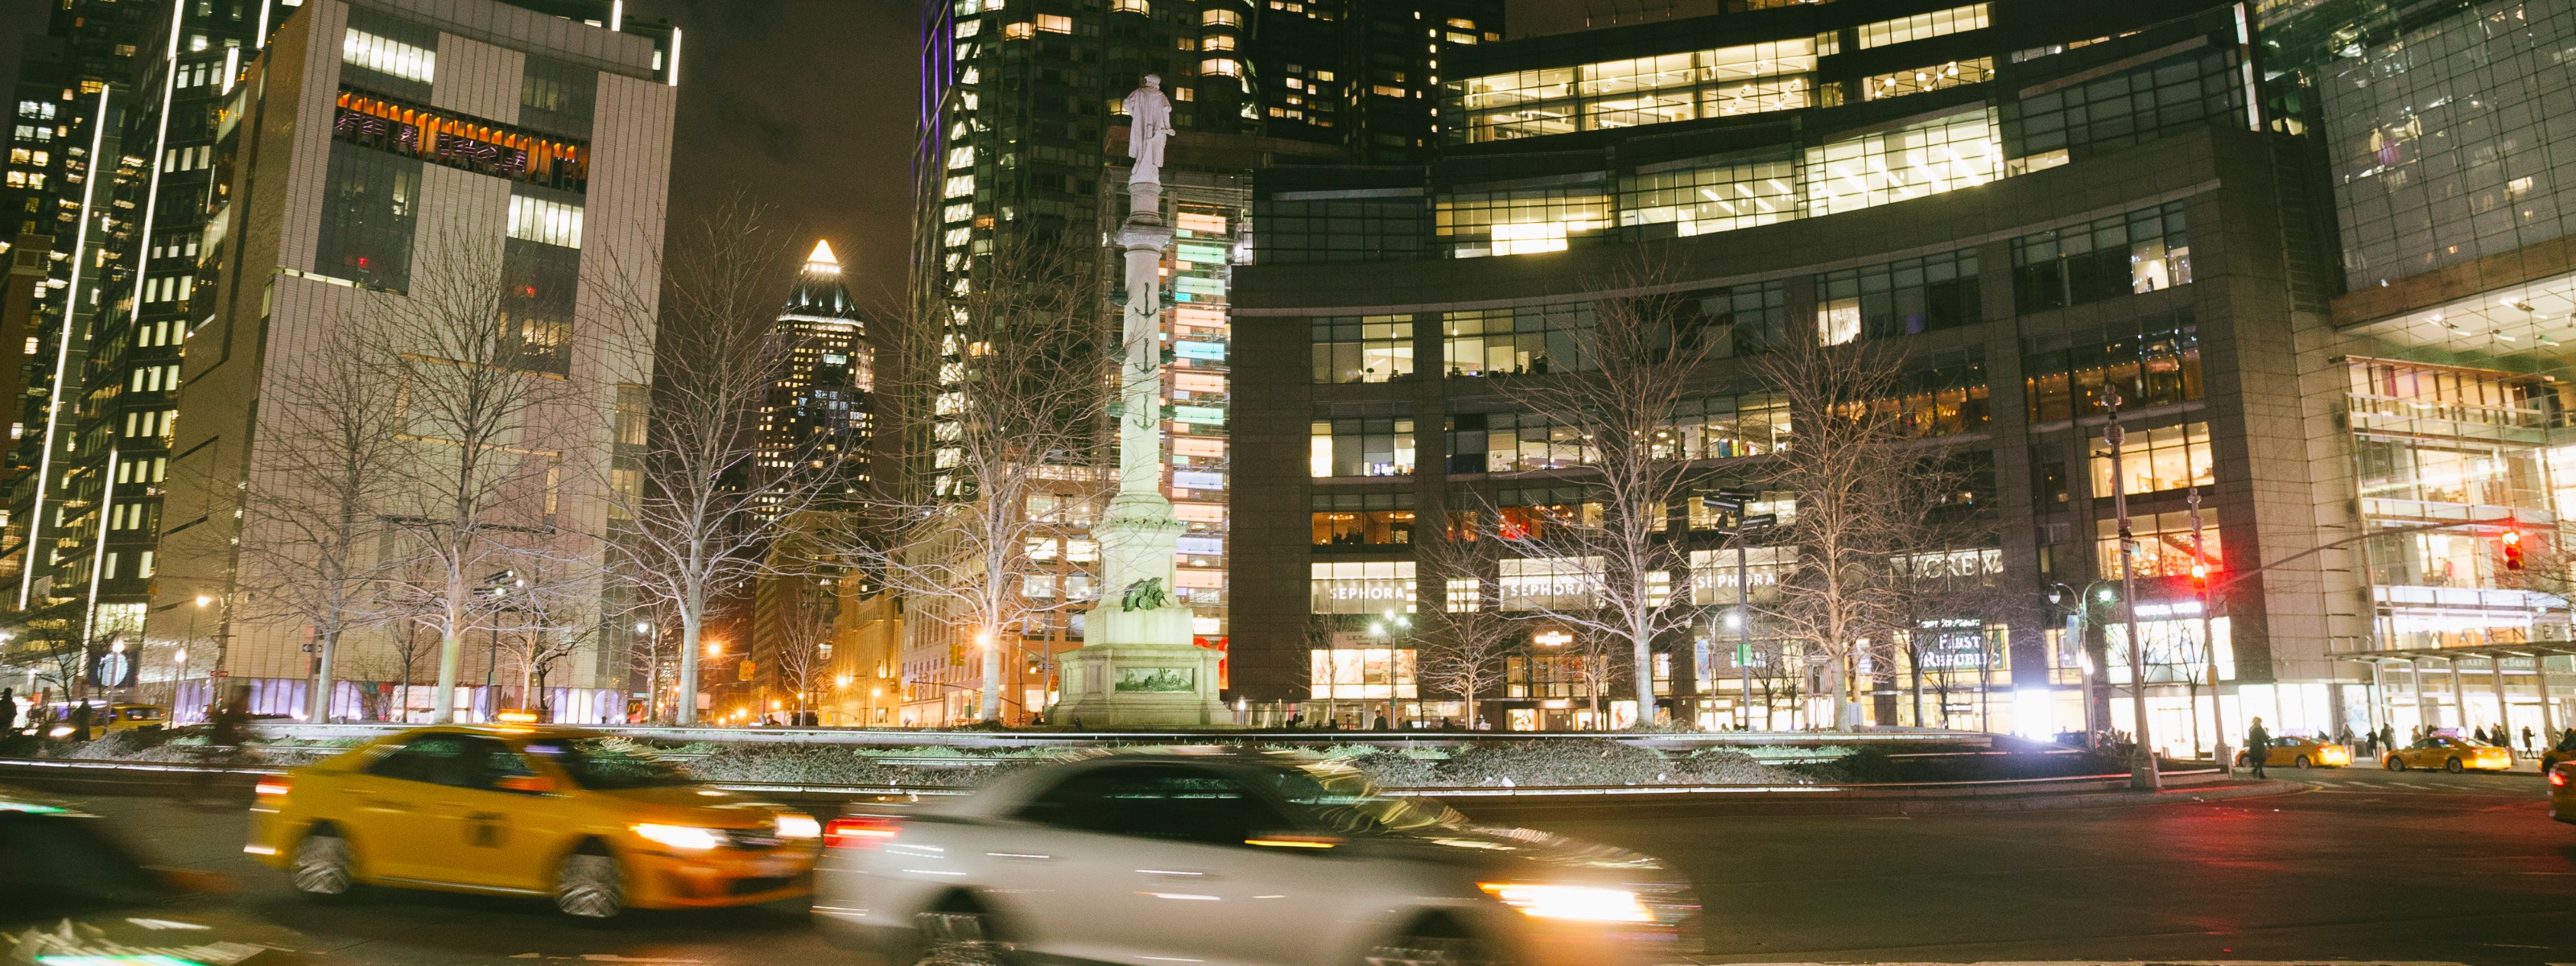 Where To Eat Near Columbus Circle - New York - The Infatuation